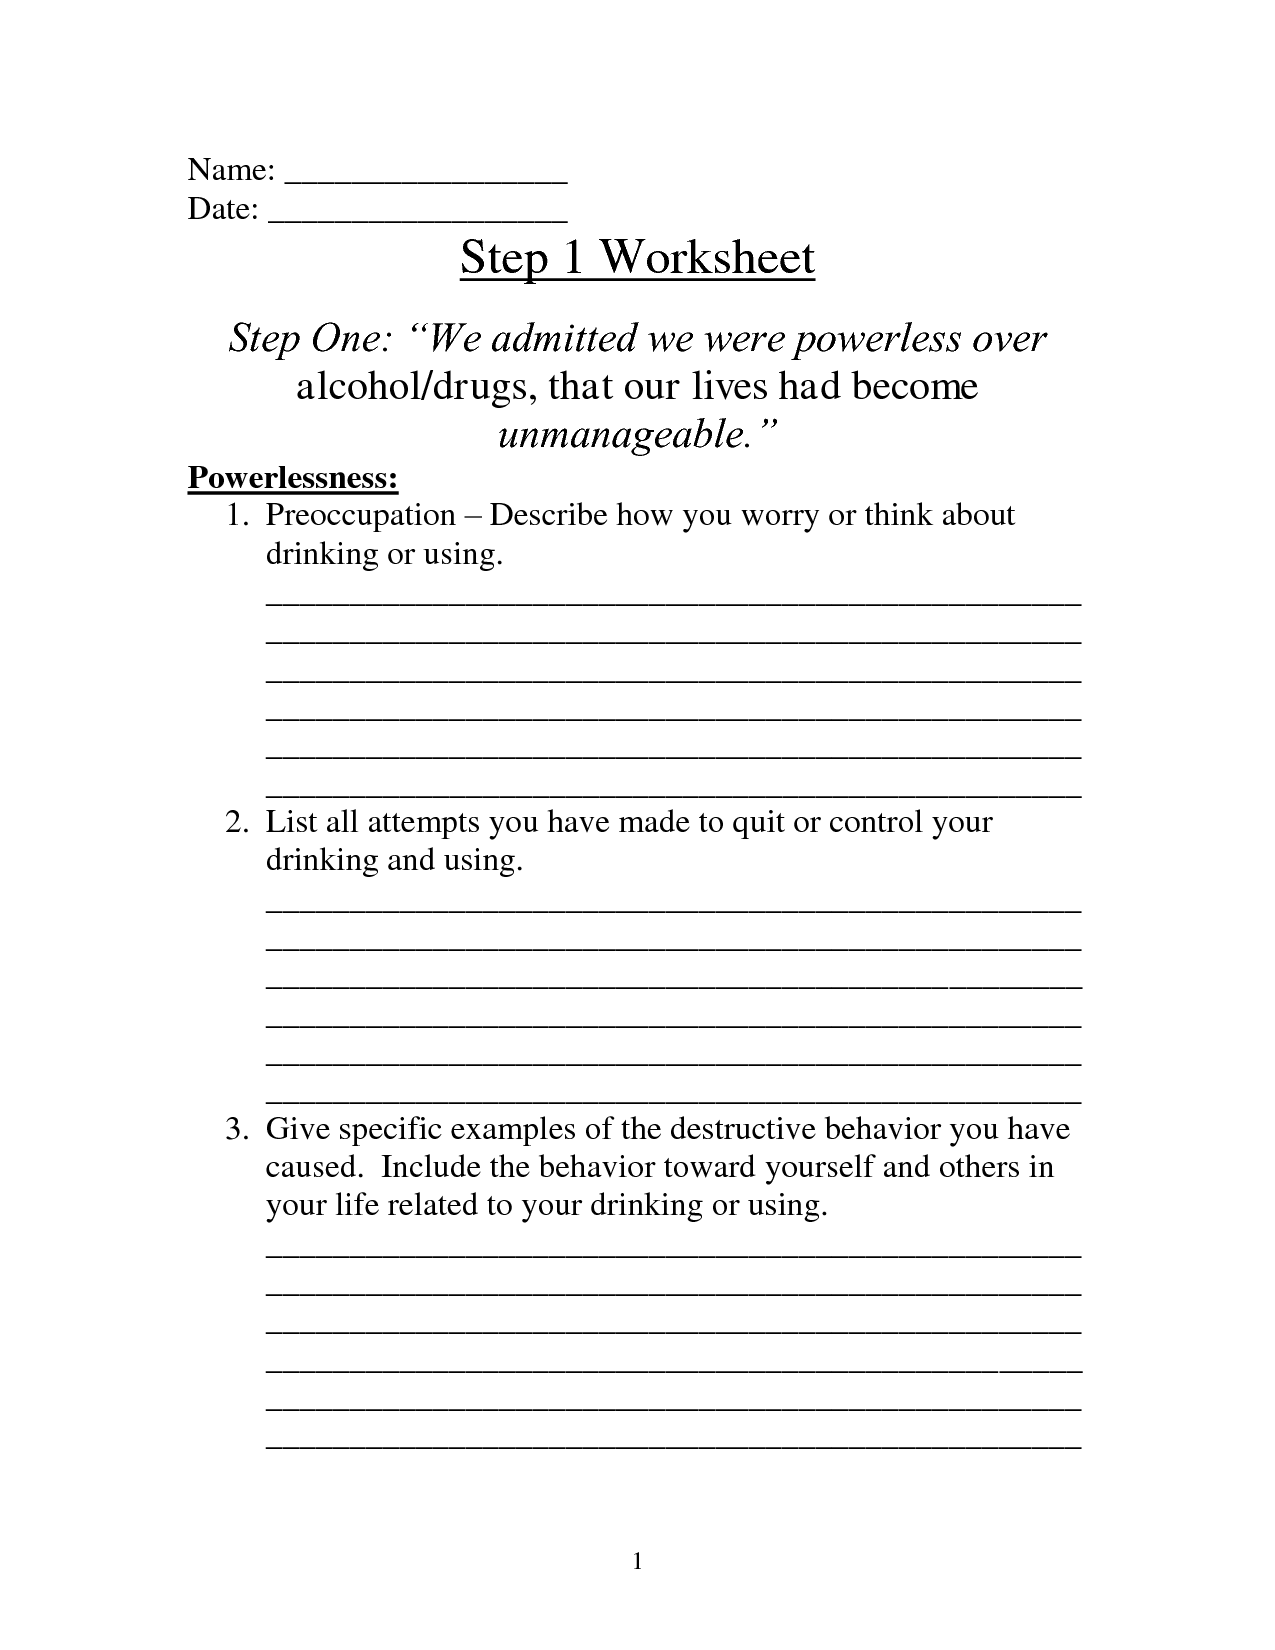 Self Love Worksheets